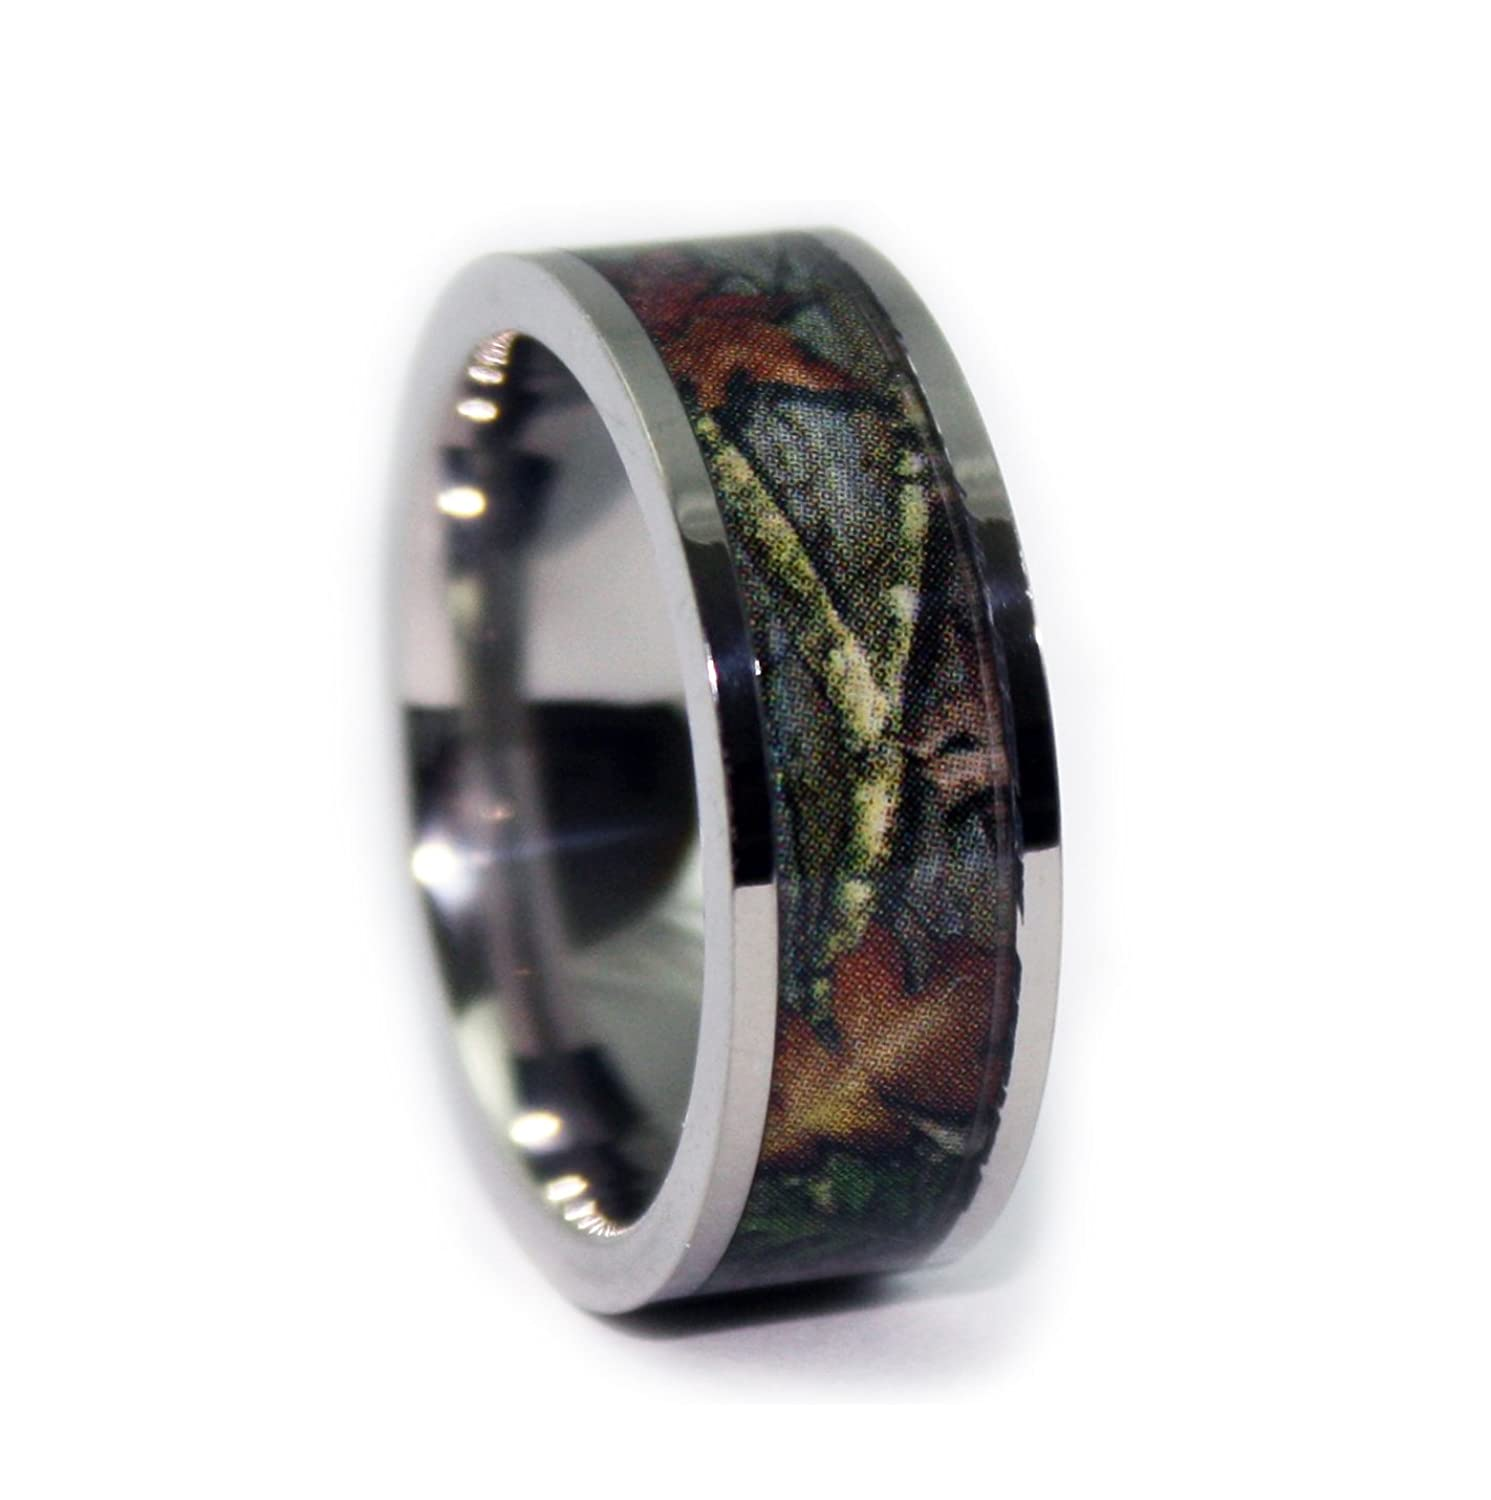 amazoncom camo wedding rings by 1 camo camo engagement rings flat titanium jewelry - Hunting Wedding Rings